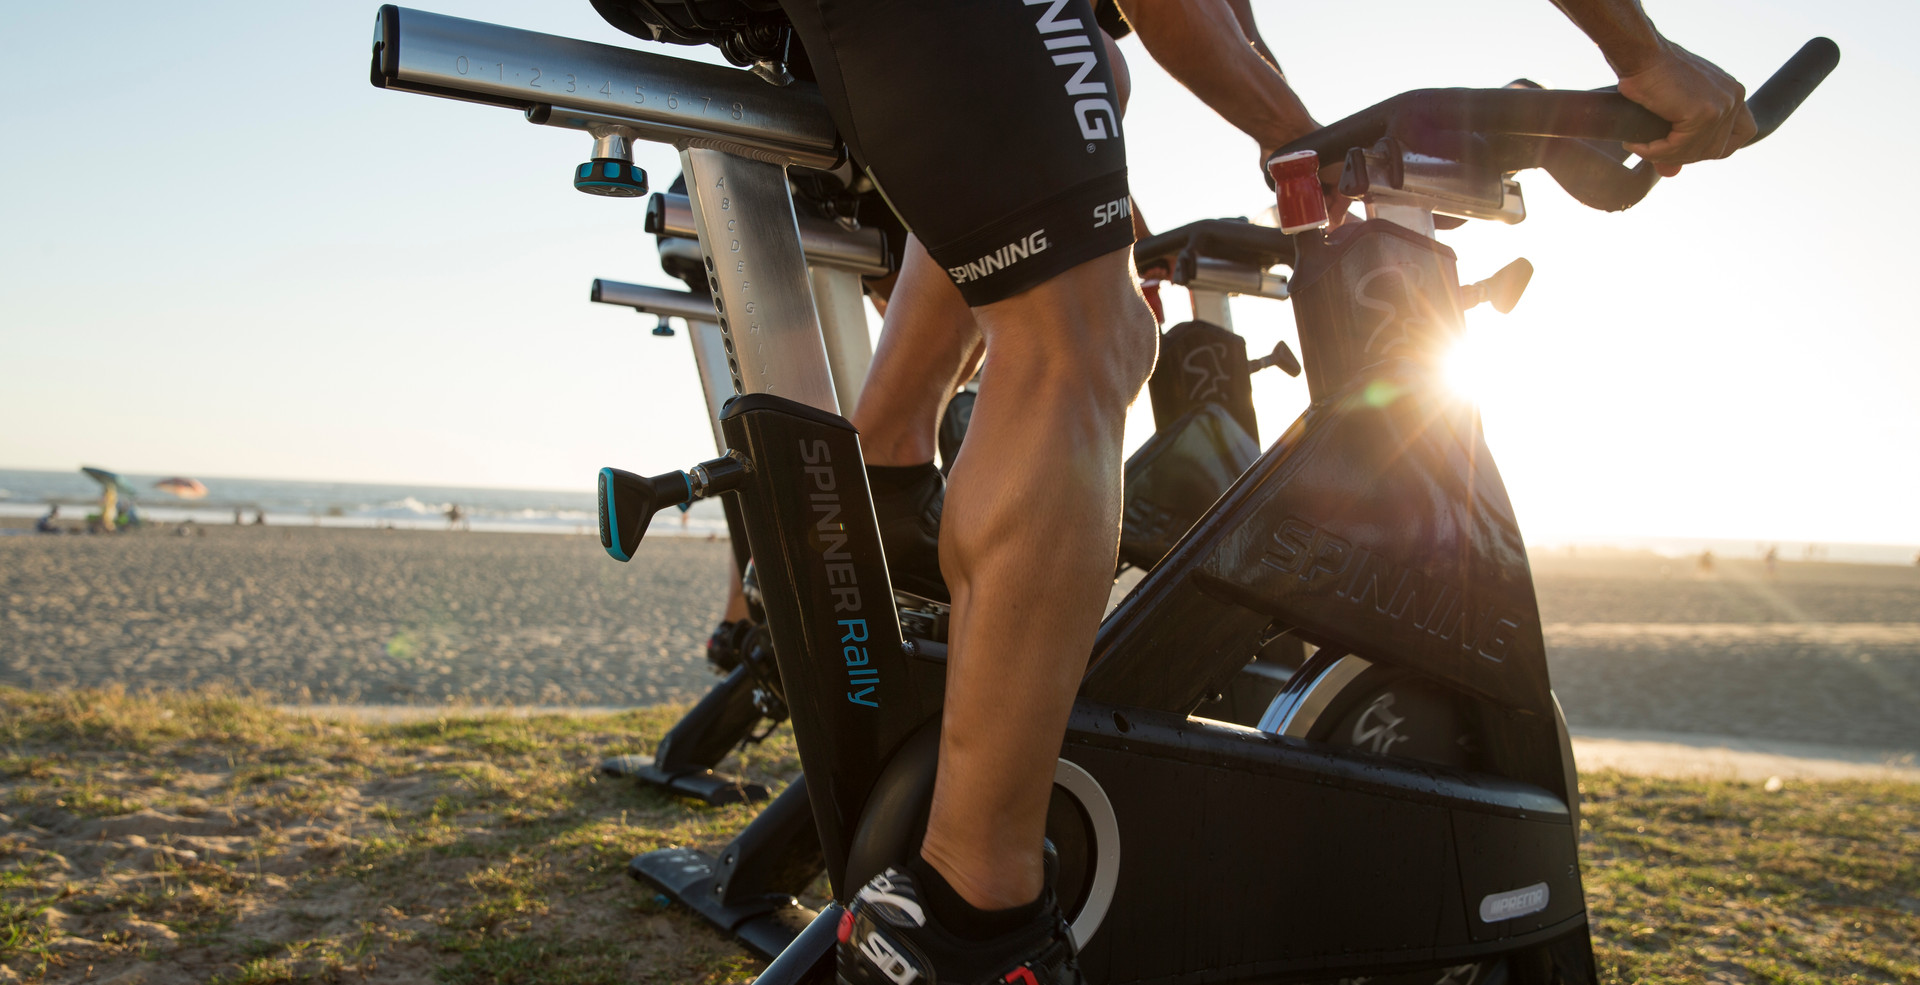 Spinning® Continued Education